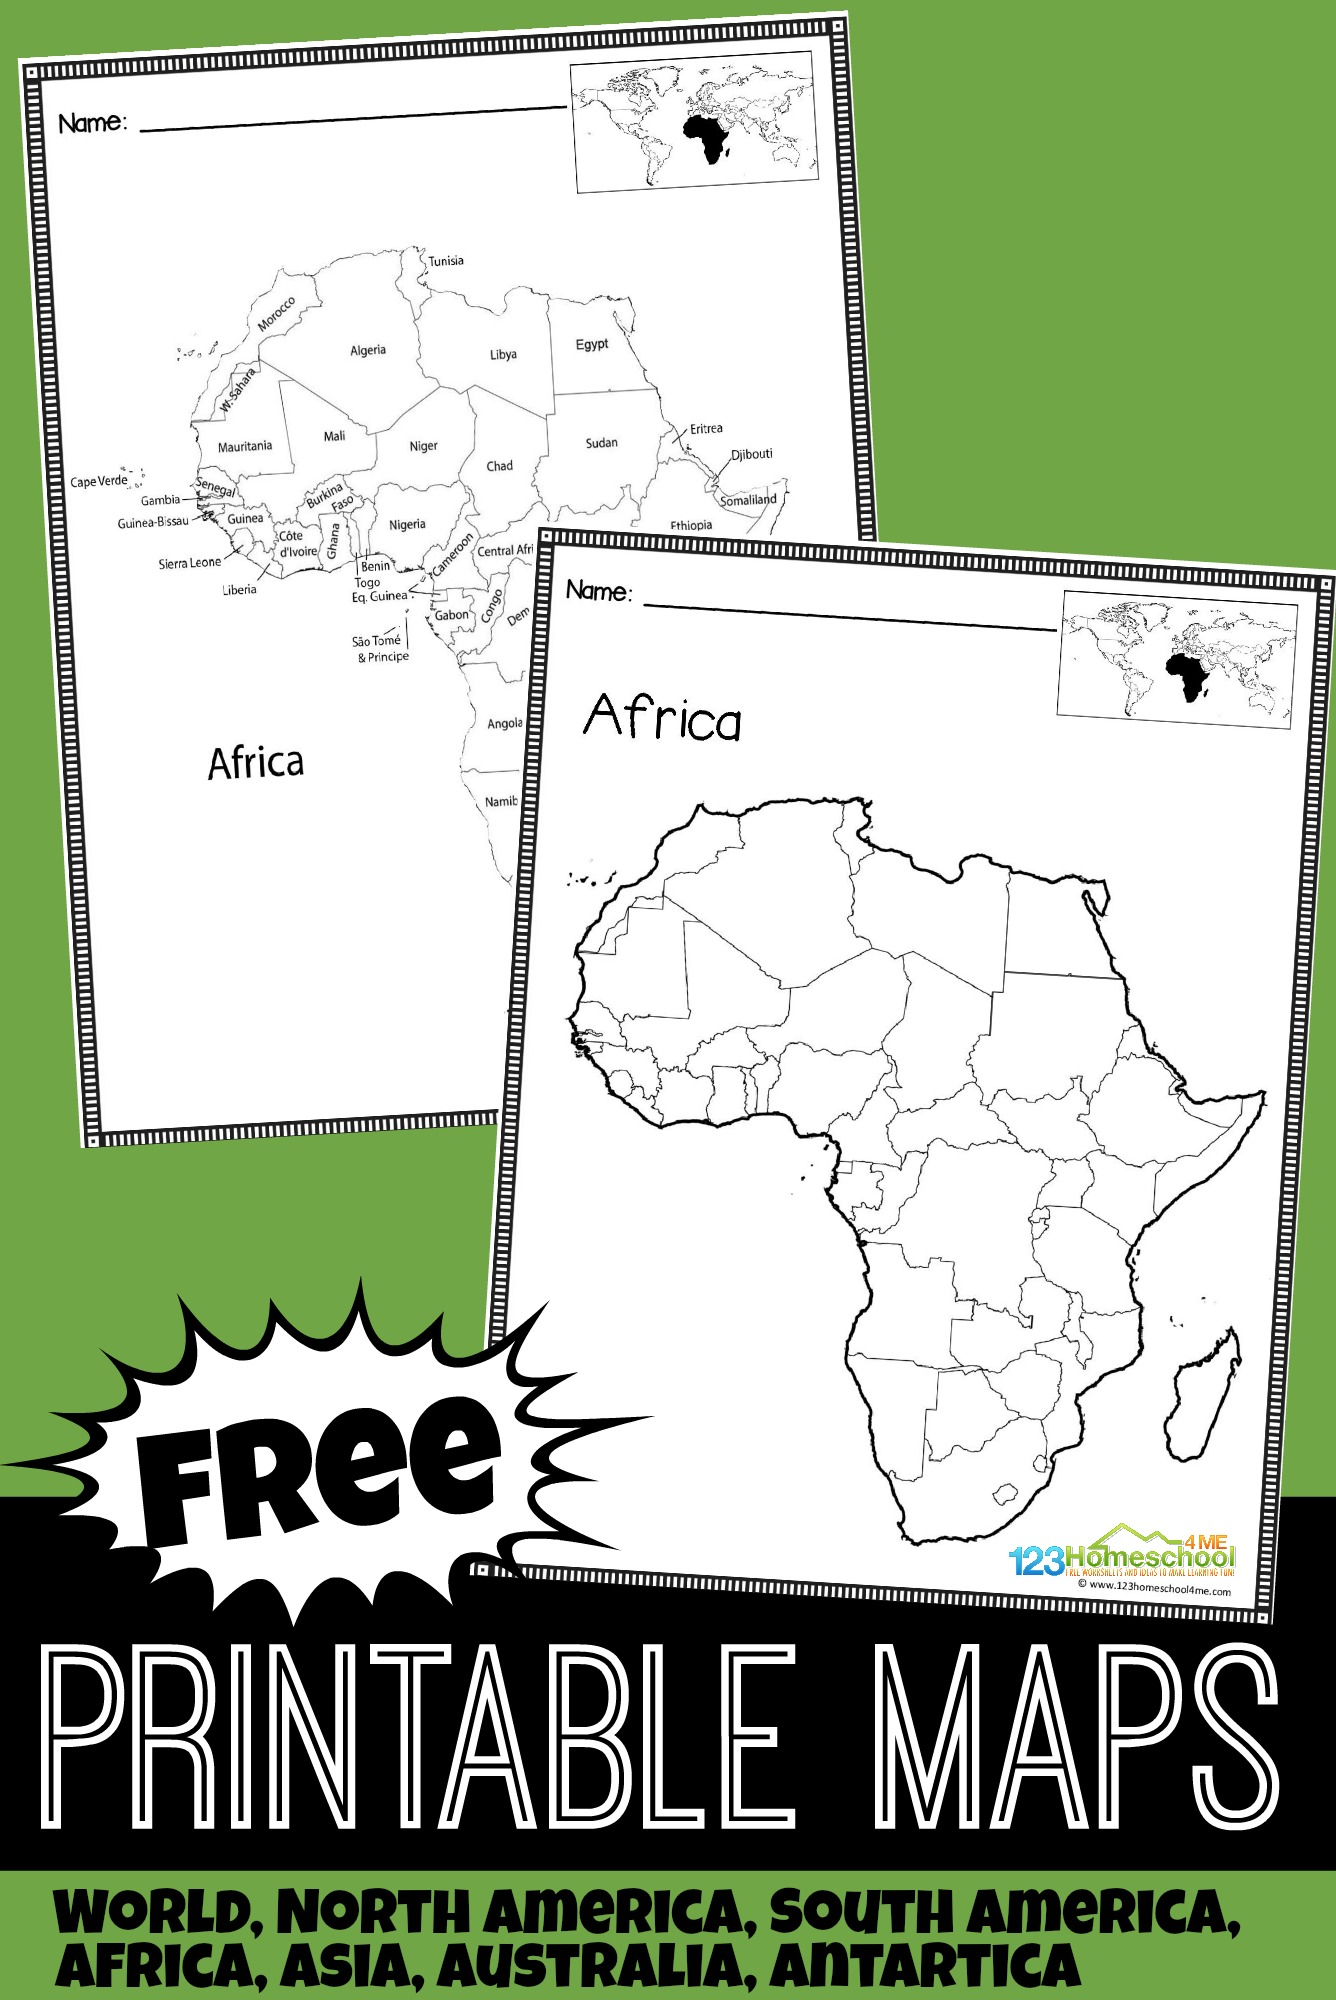 FREE Printable Maps - over 20 blank maps and labeled maps for kids to learn about the countries around the world - track the spread of coronavirus, events in history, rivers, mountains, capitals, continents, and more with these maps for kids learning geography #homeschool #printablemaps #education